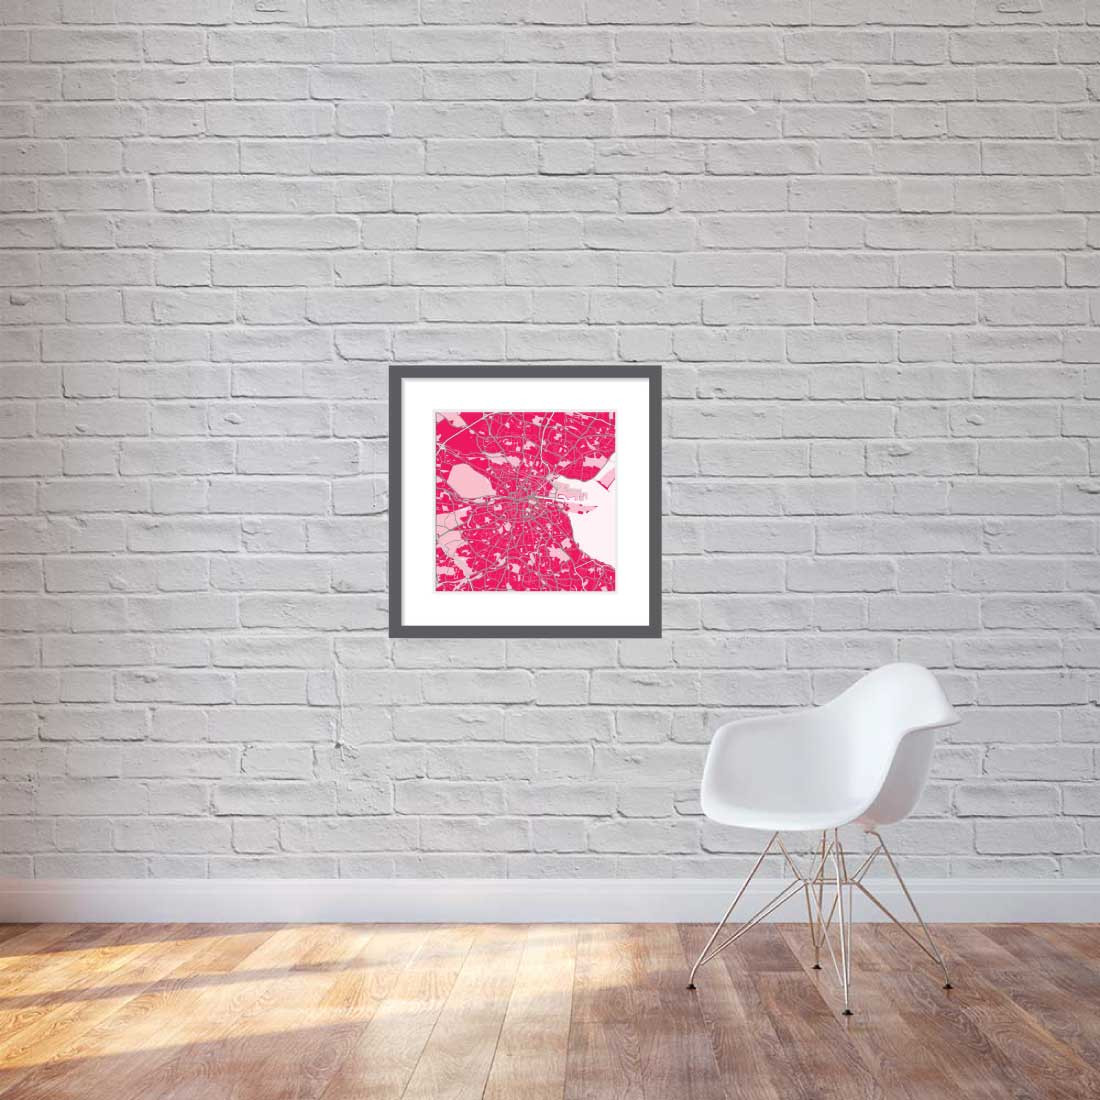 Matt print 60cmx60cm Dublin Strawberry Milk